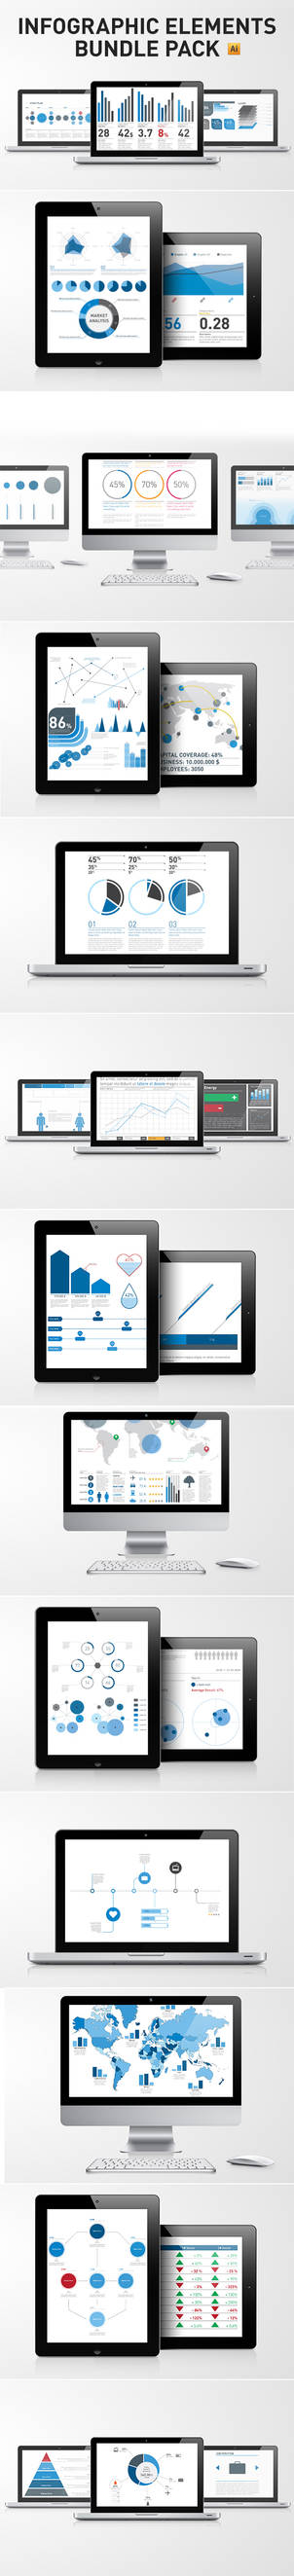 Infographic Elements Template Bundle Pack